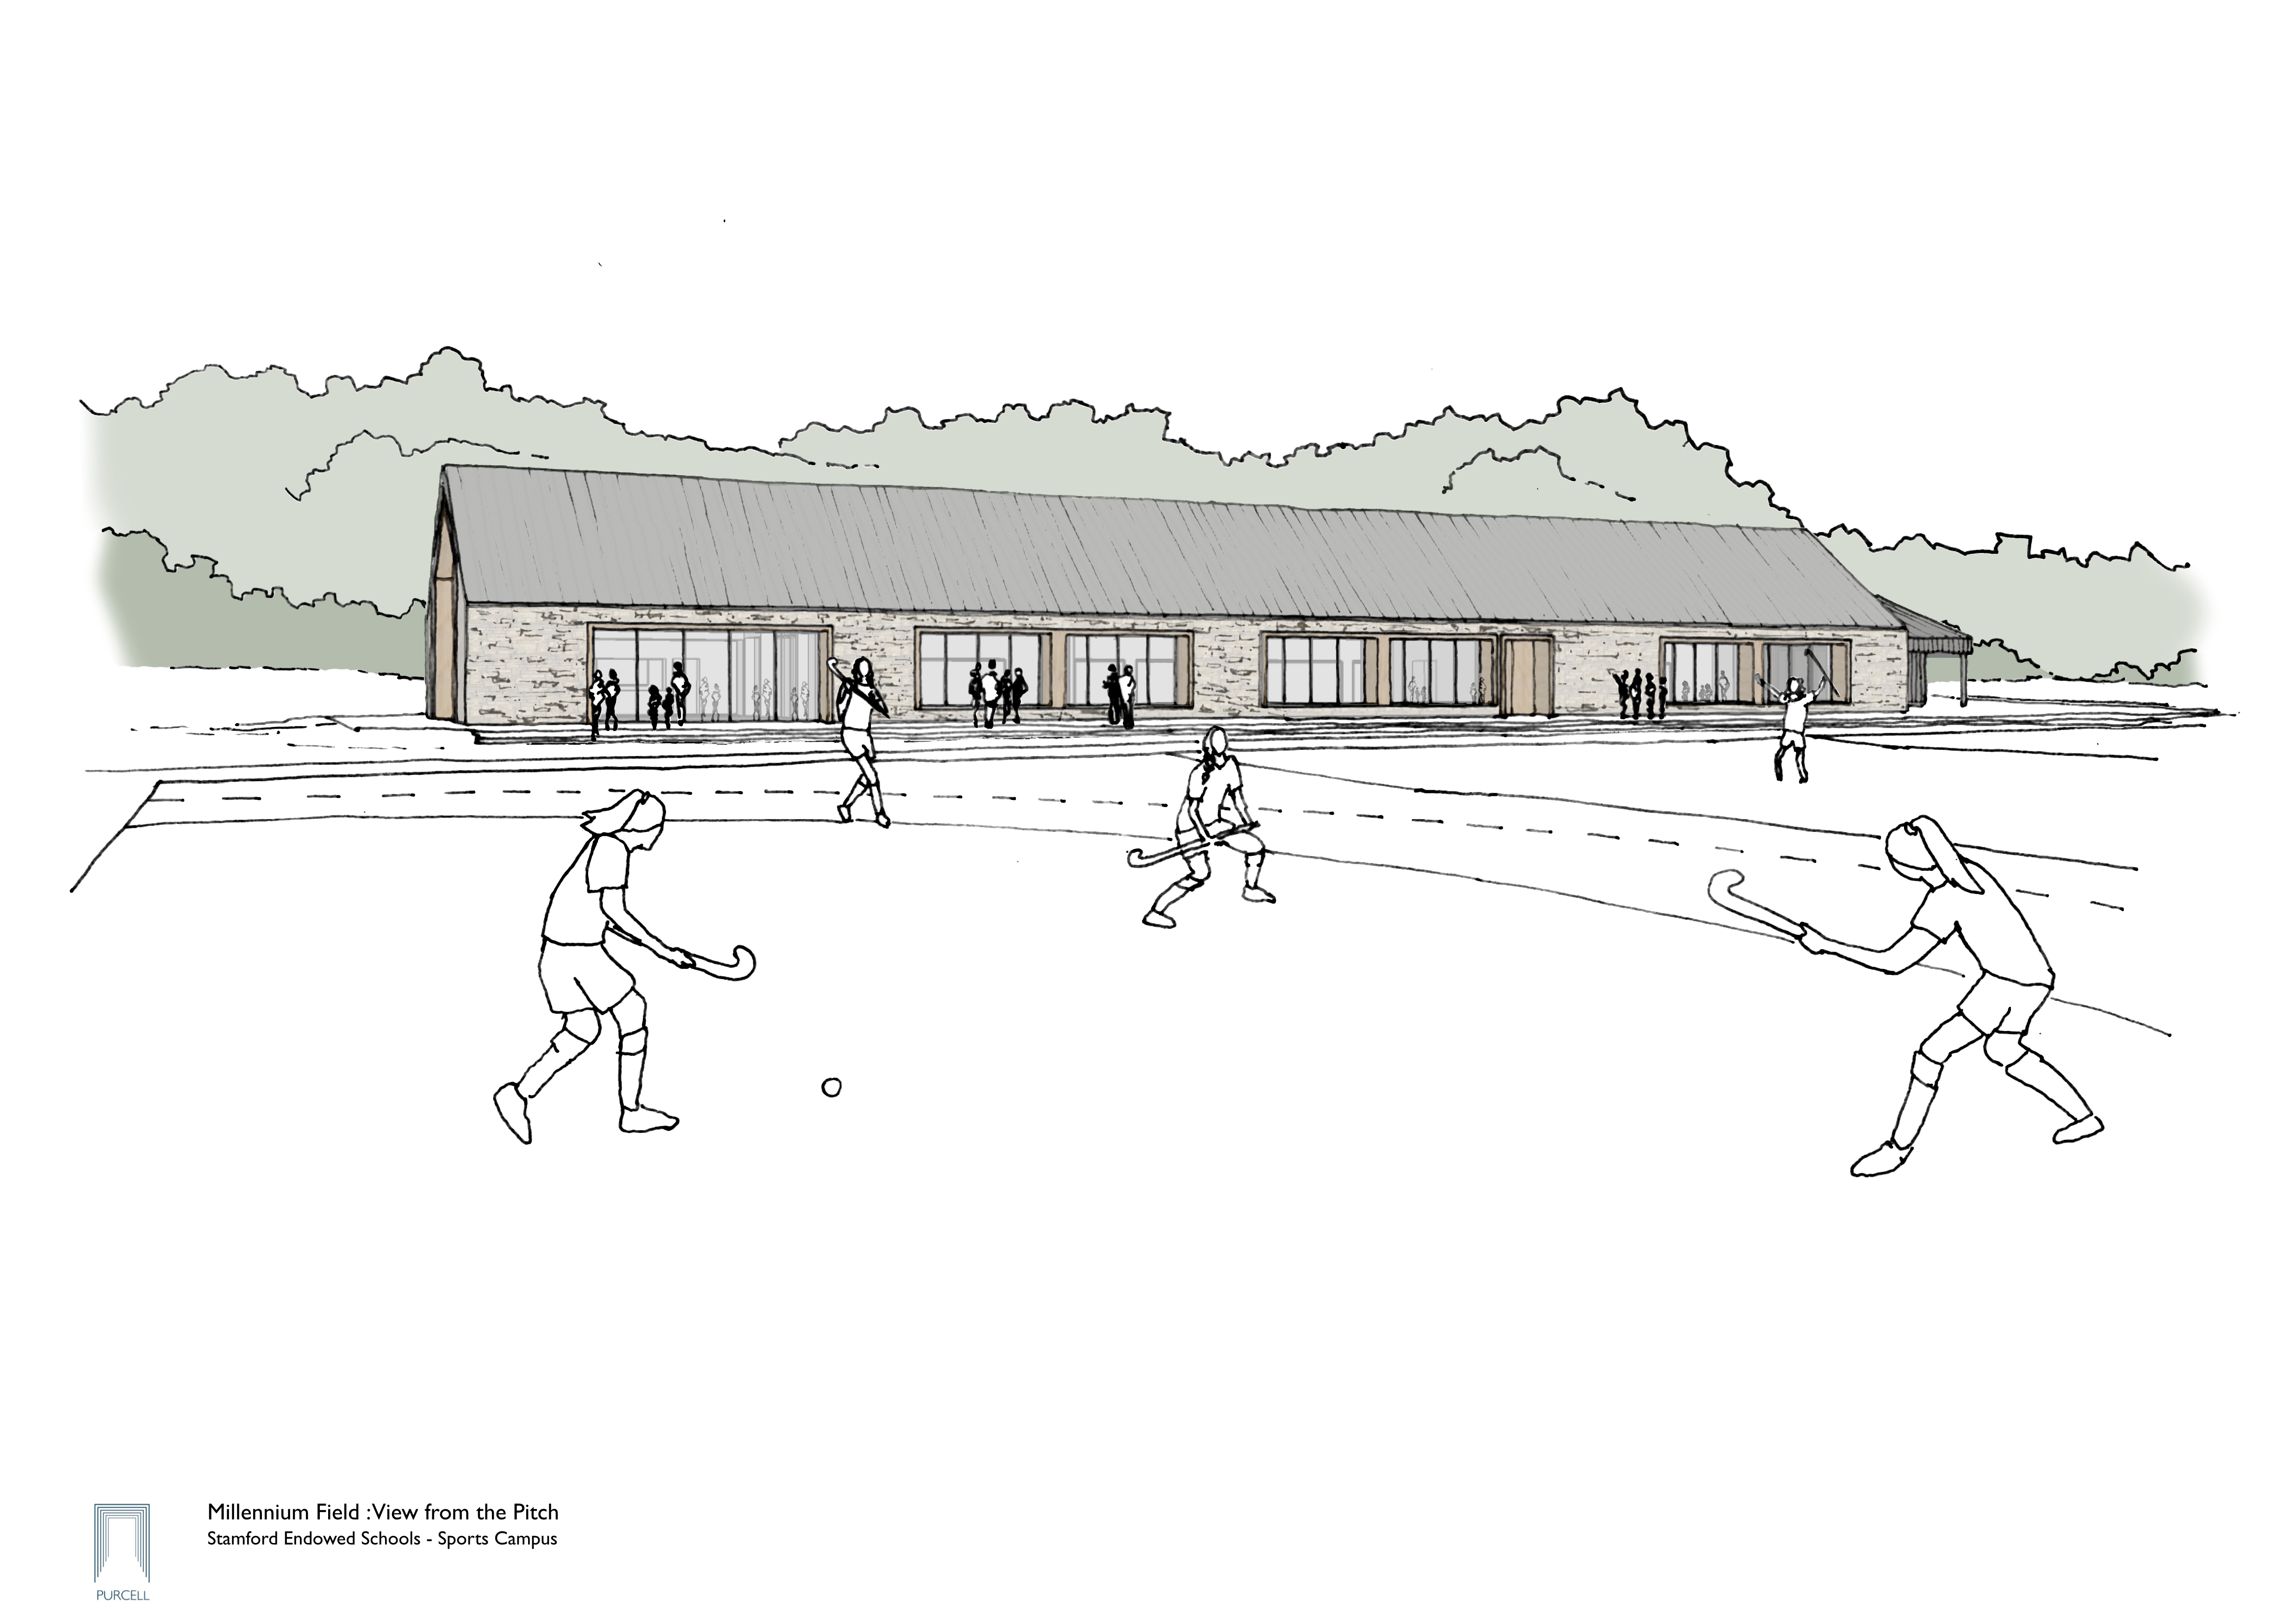 New sports development planned for the Stamford Endowed Schools